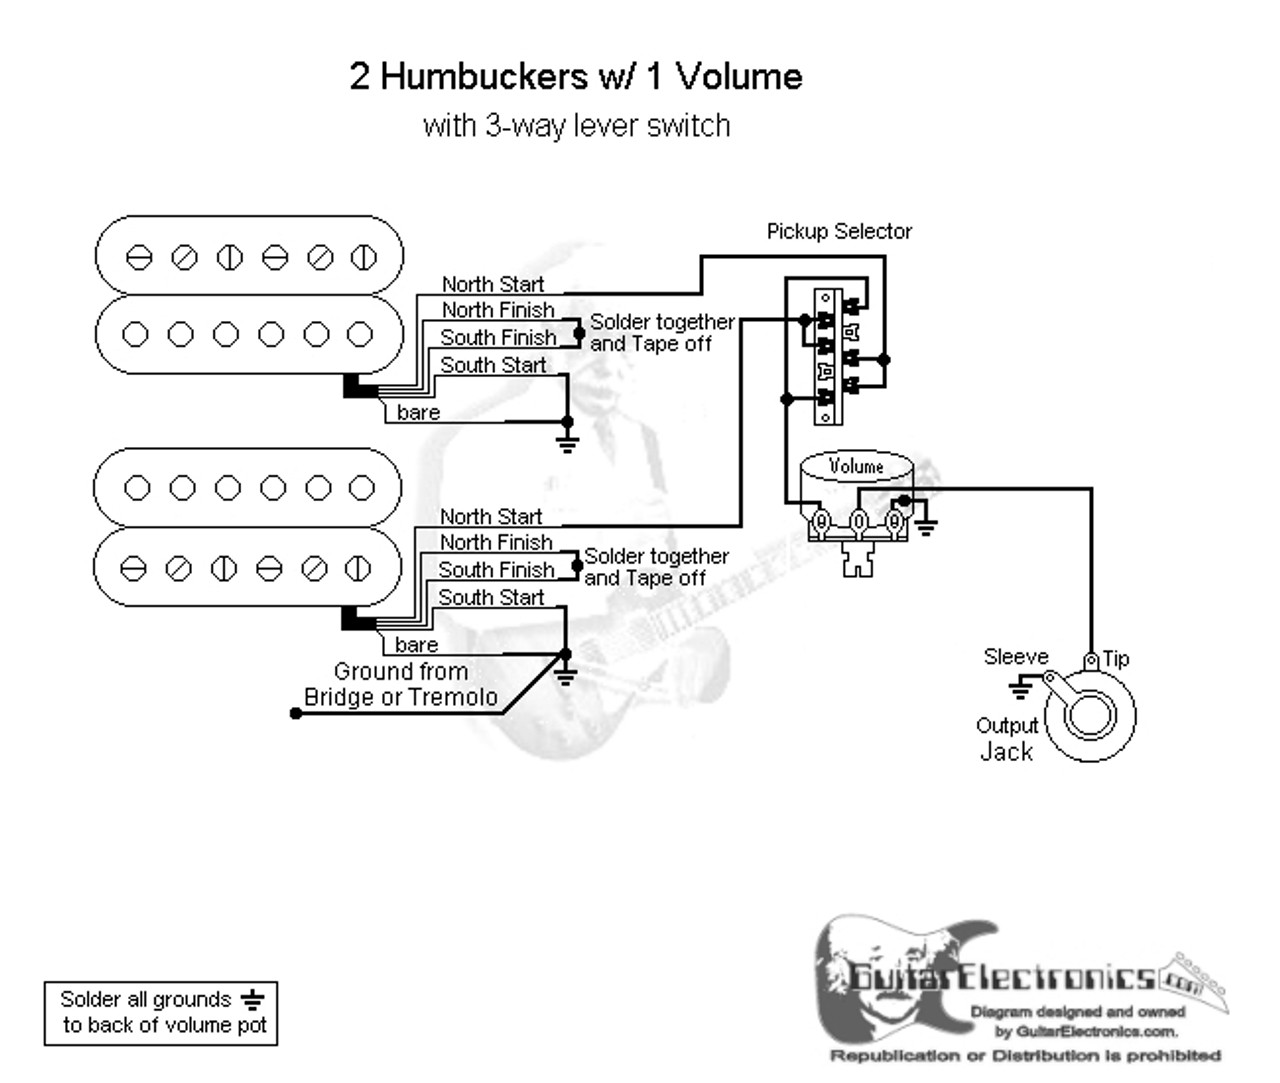 hight resolution of 2 humbuckers 3 way lever switch 1 volume guitar wiring diagram 2 humbuckers 3 way switch humbucker wire